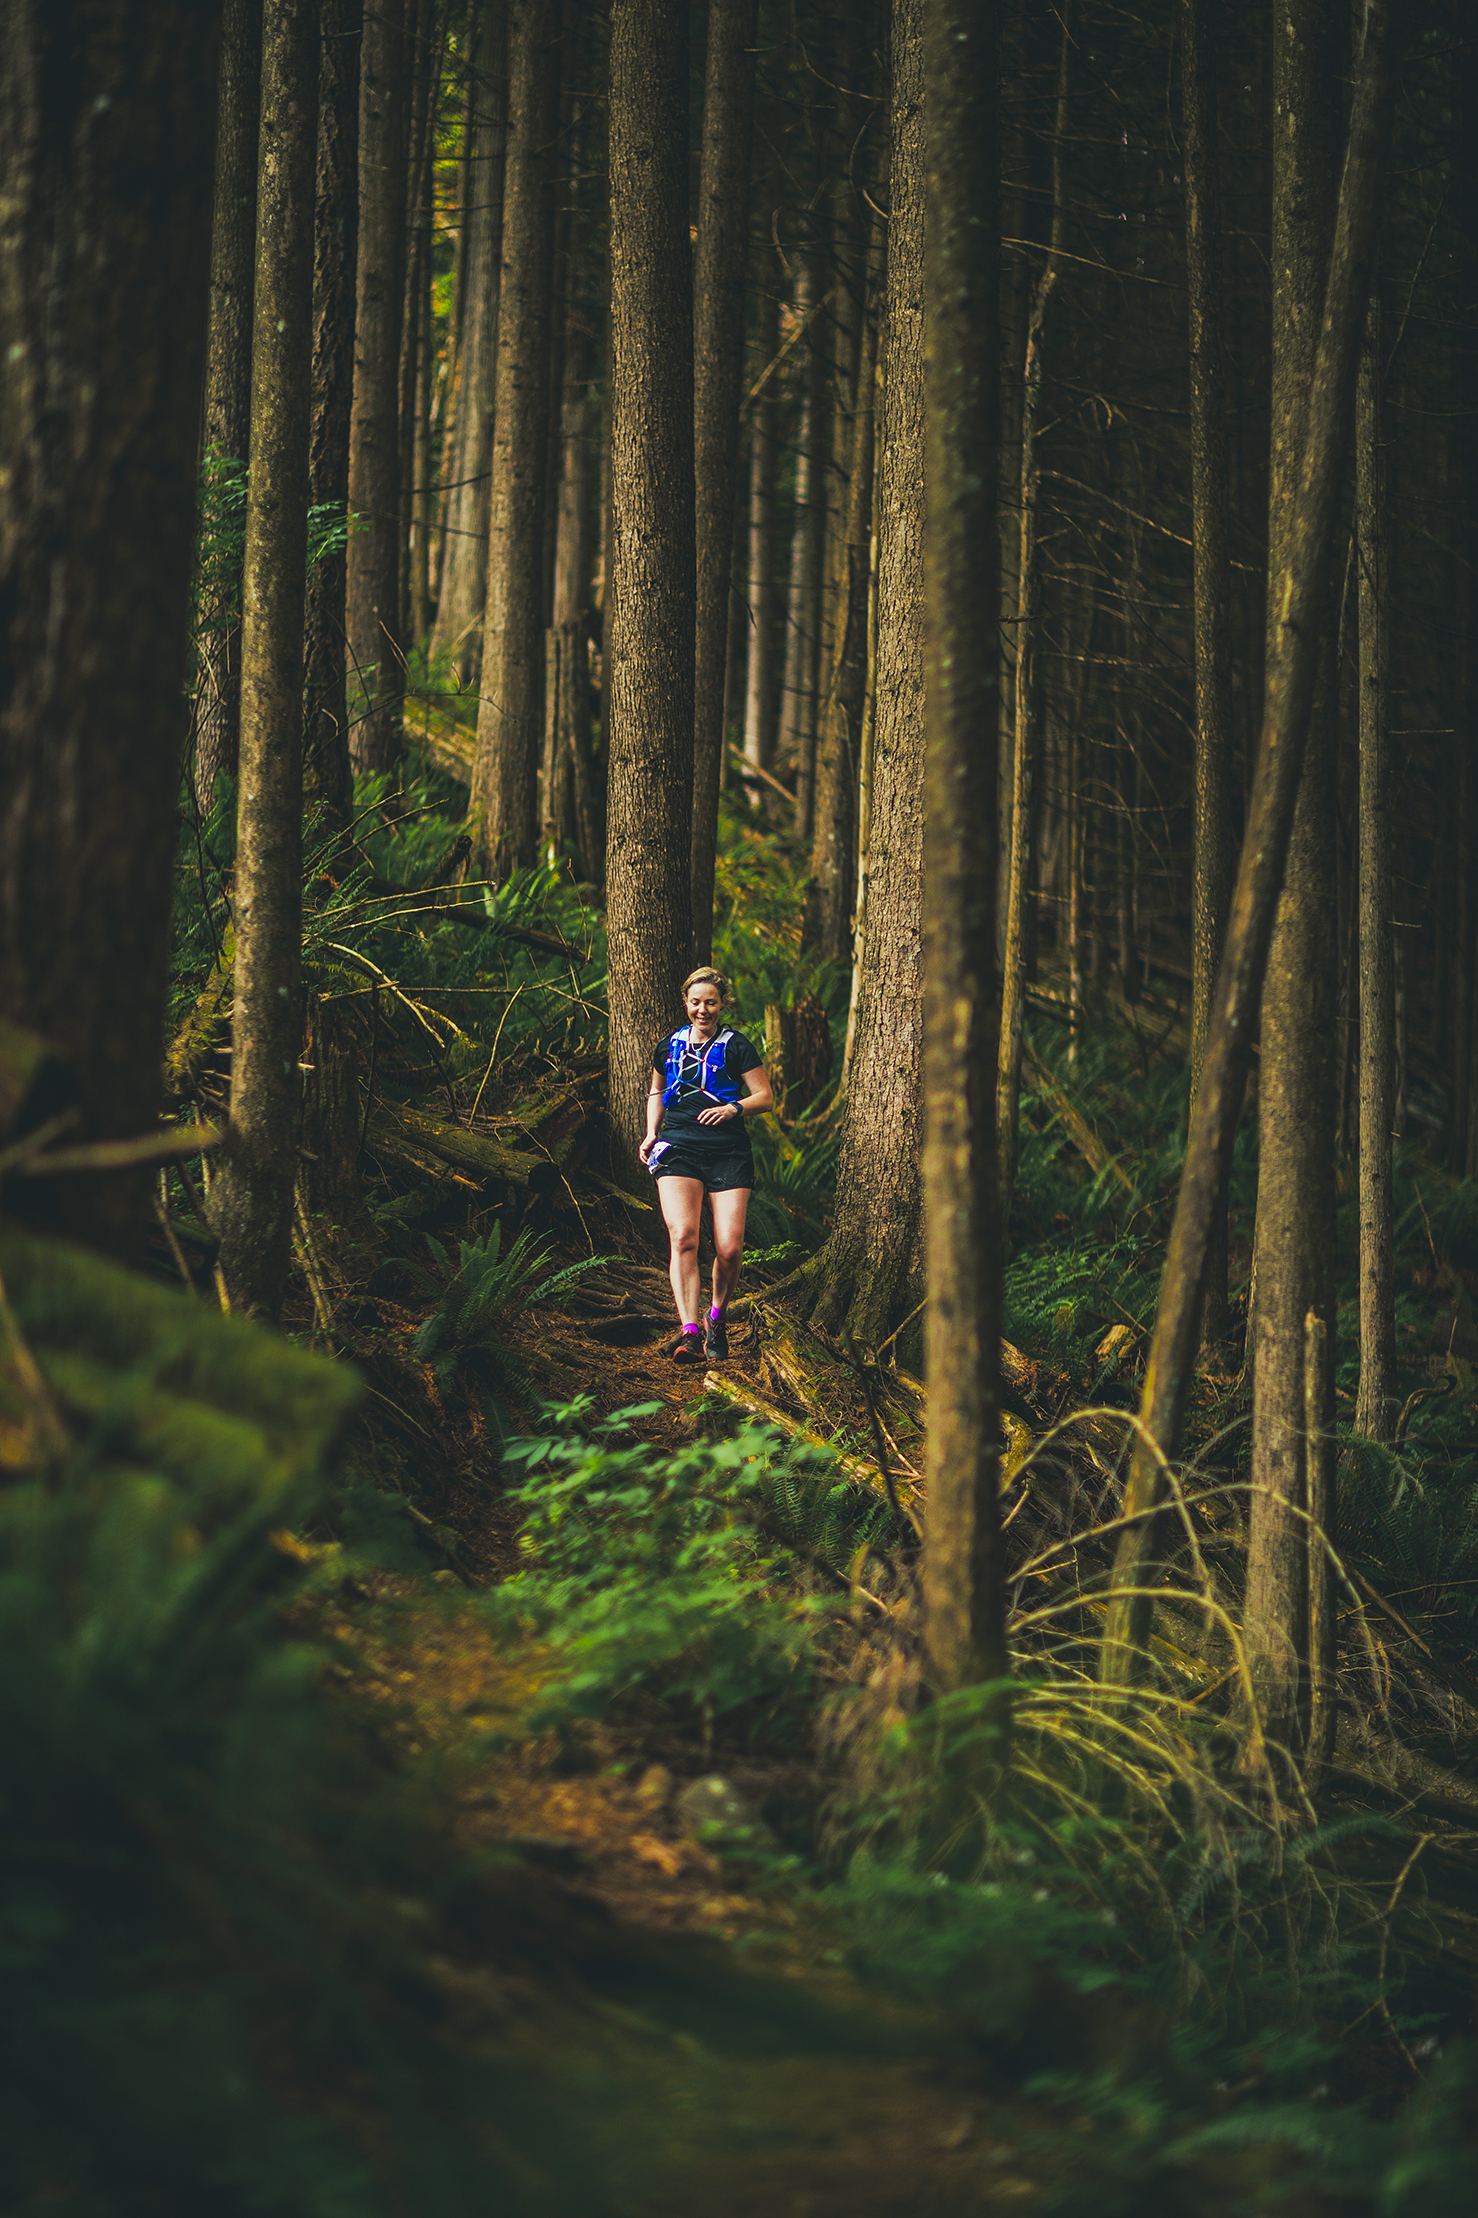 Fraser Valley Trail Races - Bear Mountain - IMG2_2361 by  Brice Ferre Studio - Vancouver Portrait Adventure and Athlete Photographer.jpg